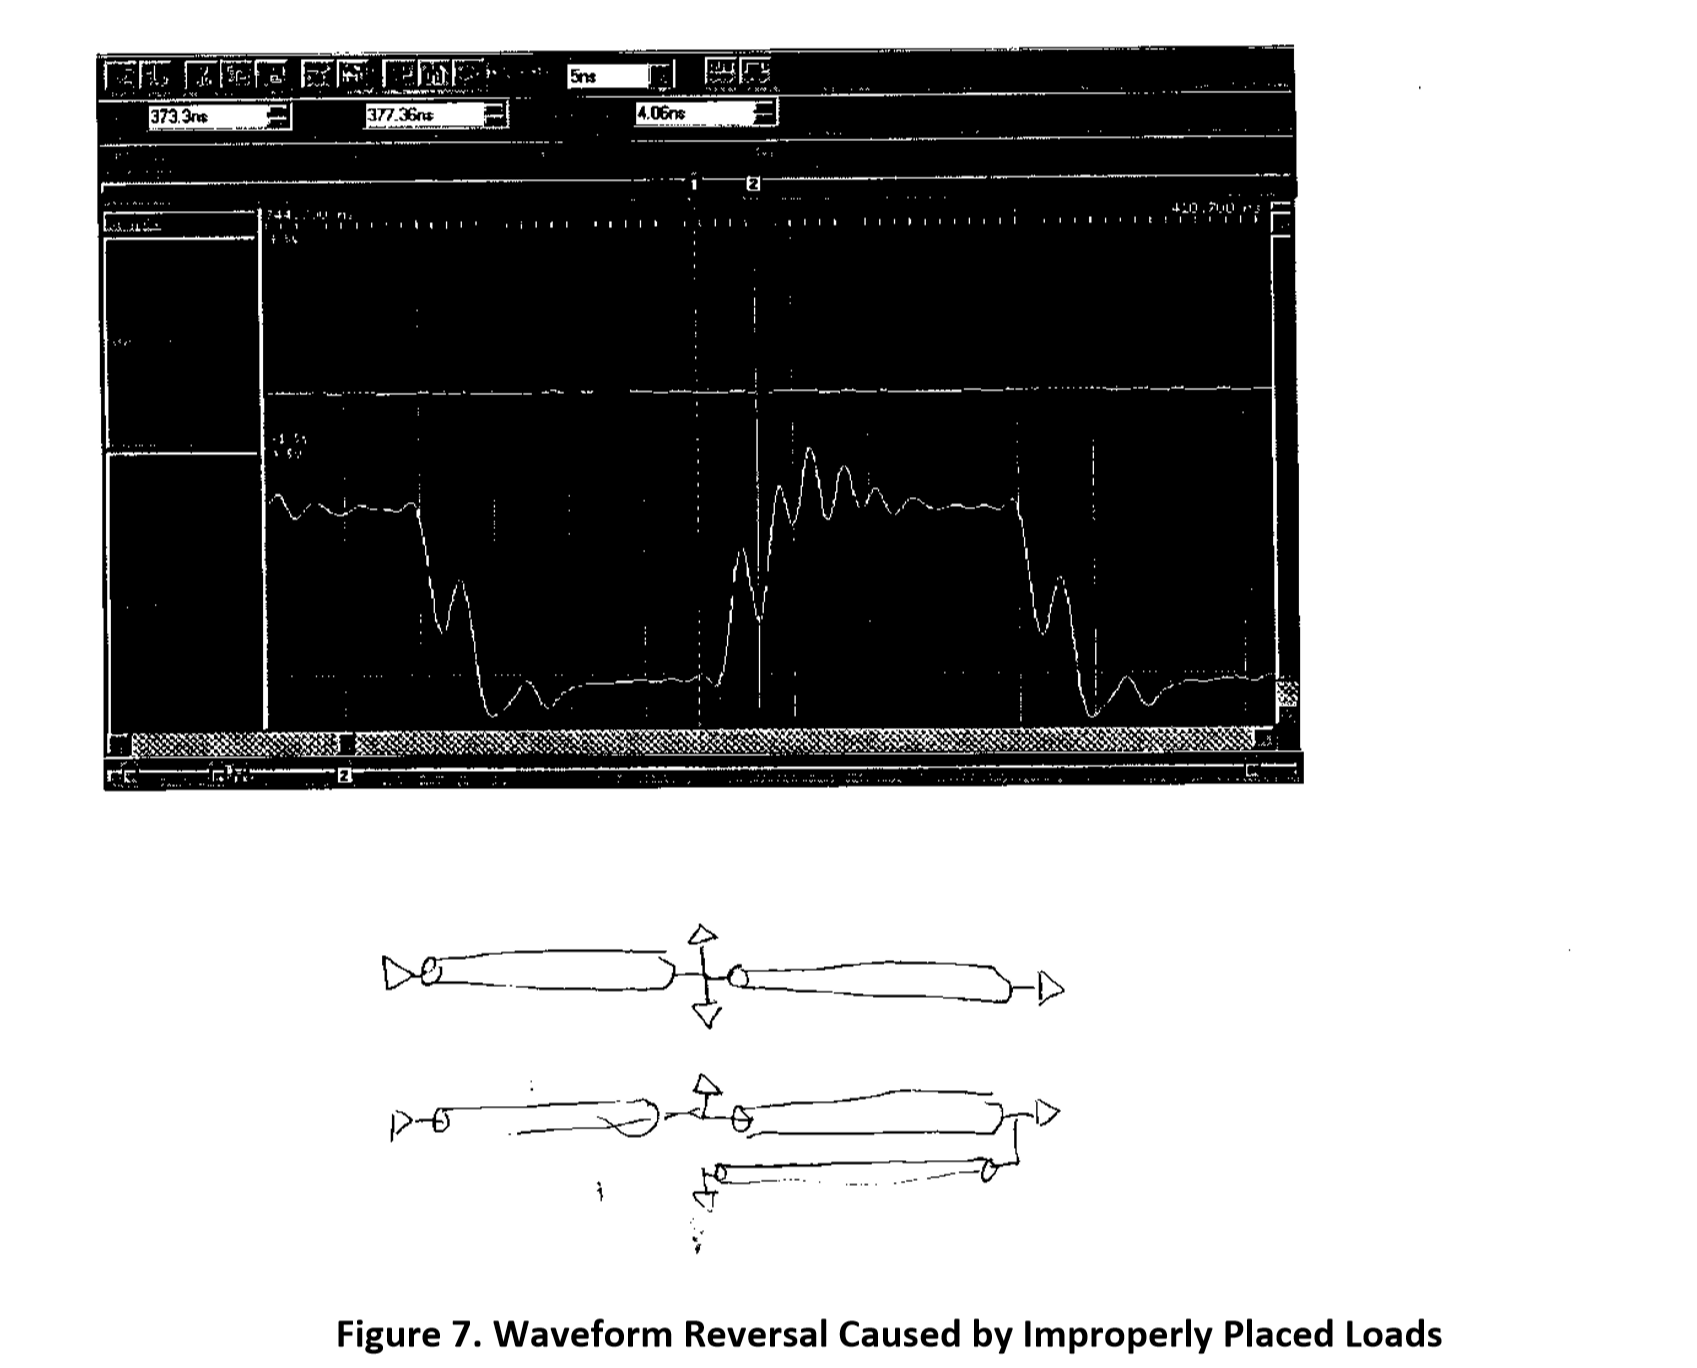 Figure 7. A photocopy of a paper containing a screenshot and a hand drawn schematic trying to describe waveform reversal caused by improperly placed loads.